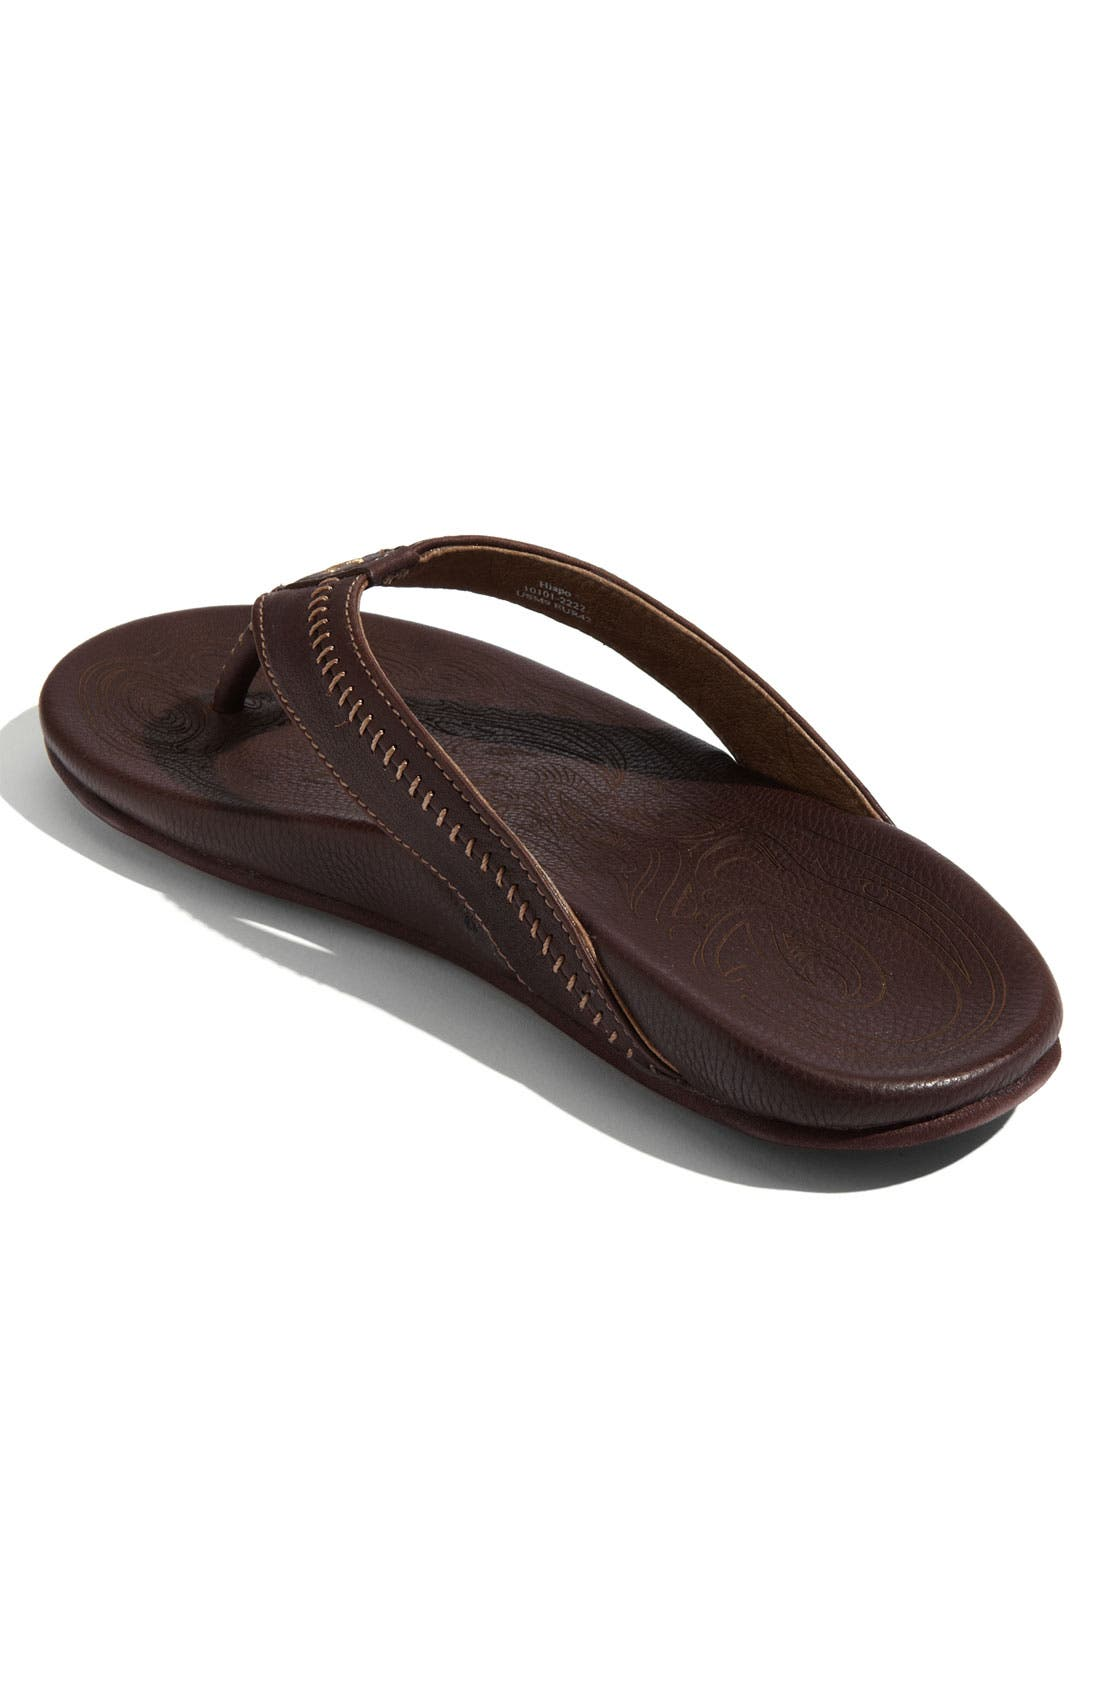 OLUKAI,                             'Hiapo' Flip Flop,                             Alternate thumbnail 3, color,                             TEAK/ TEAK